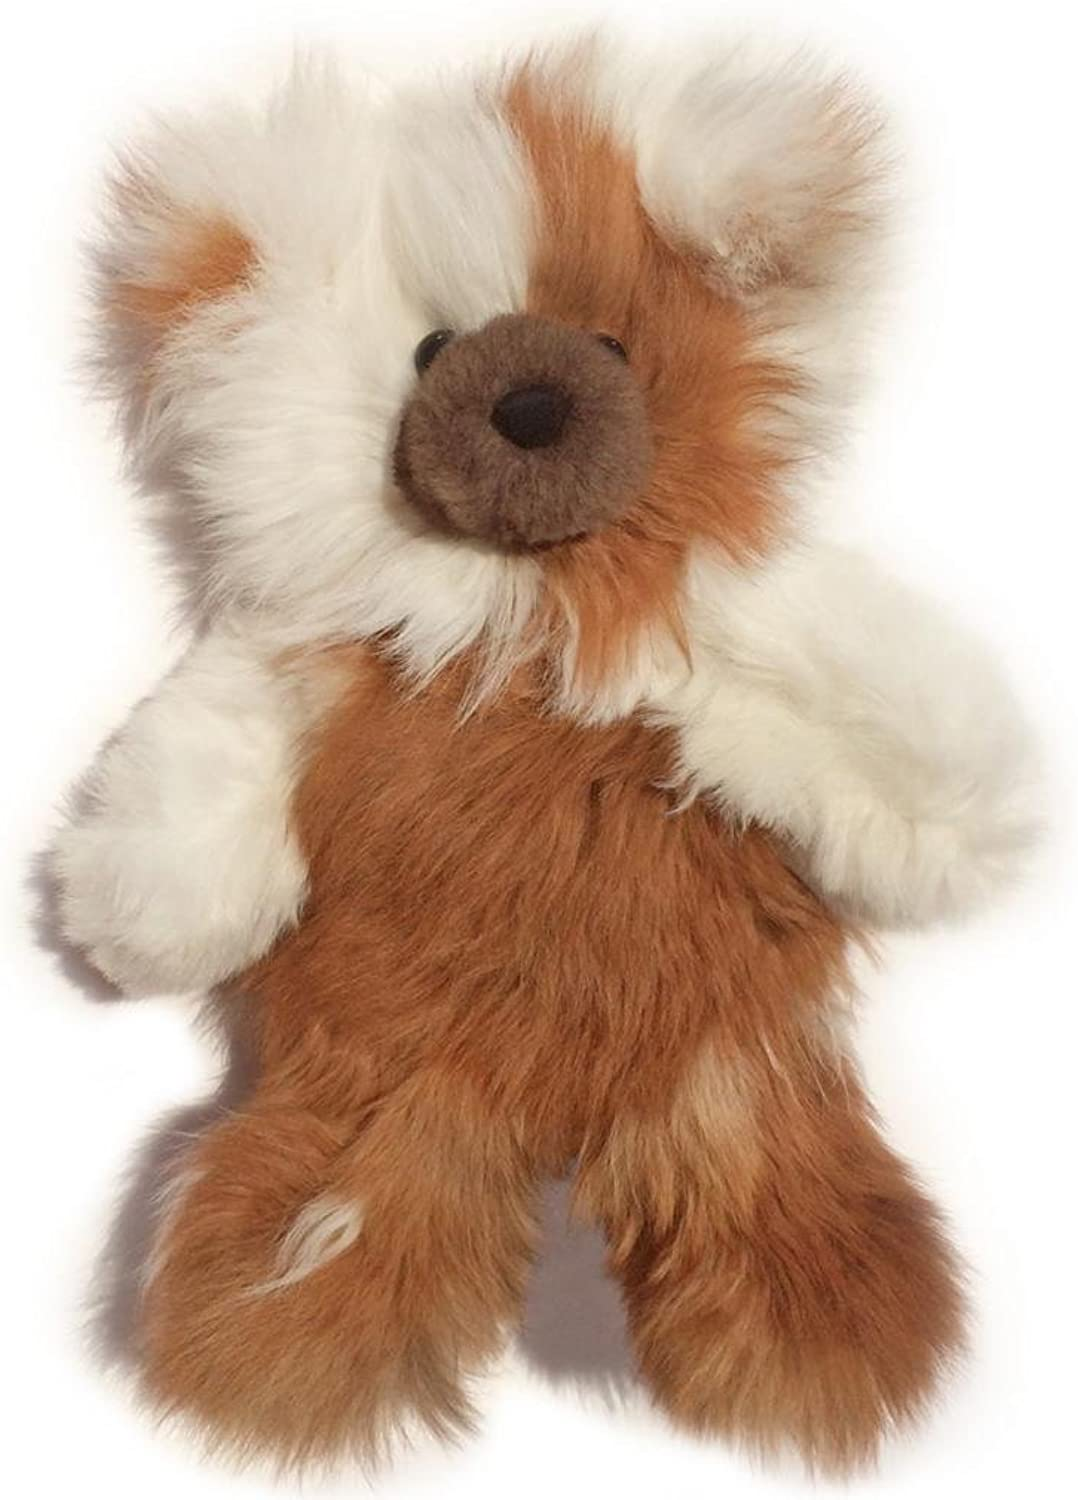 Baby Alpaca Fur Teddy Bear  Hand Made 12 Inch Multi colord  Honey   White